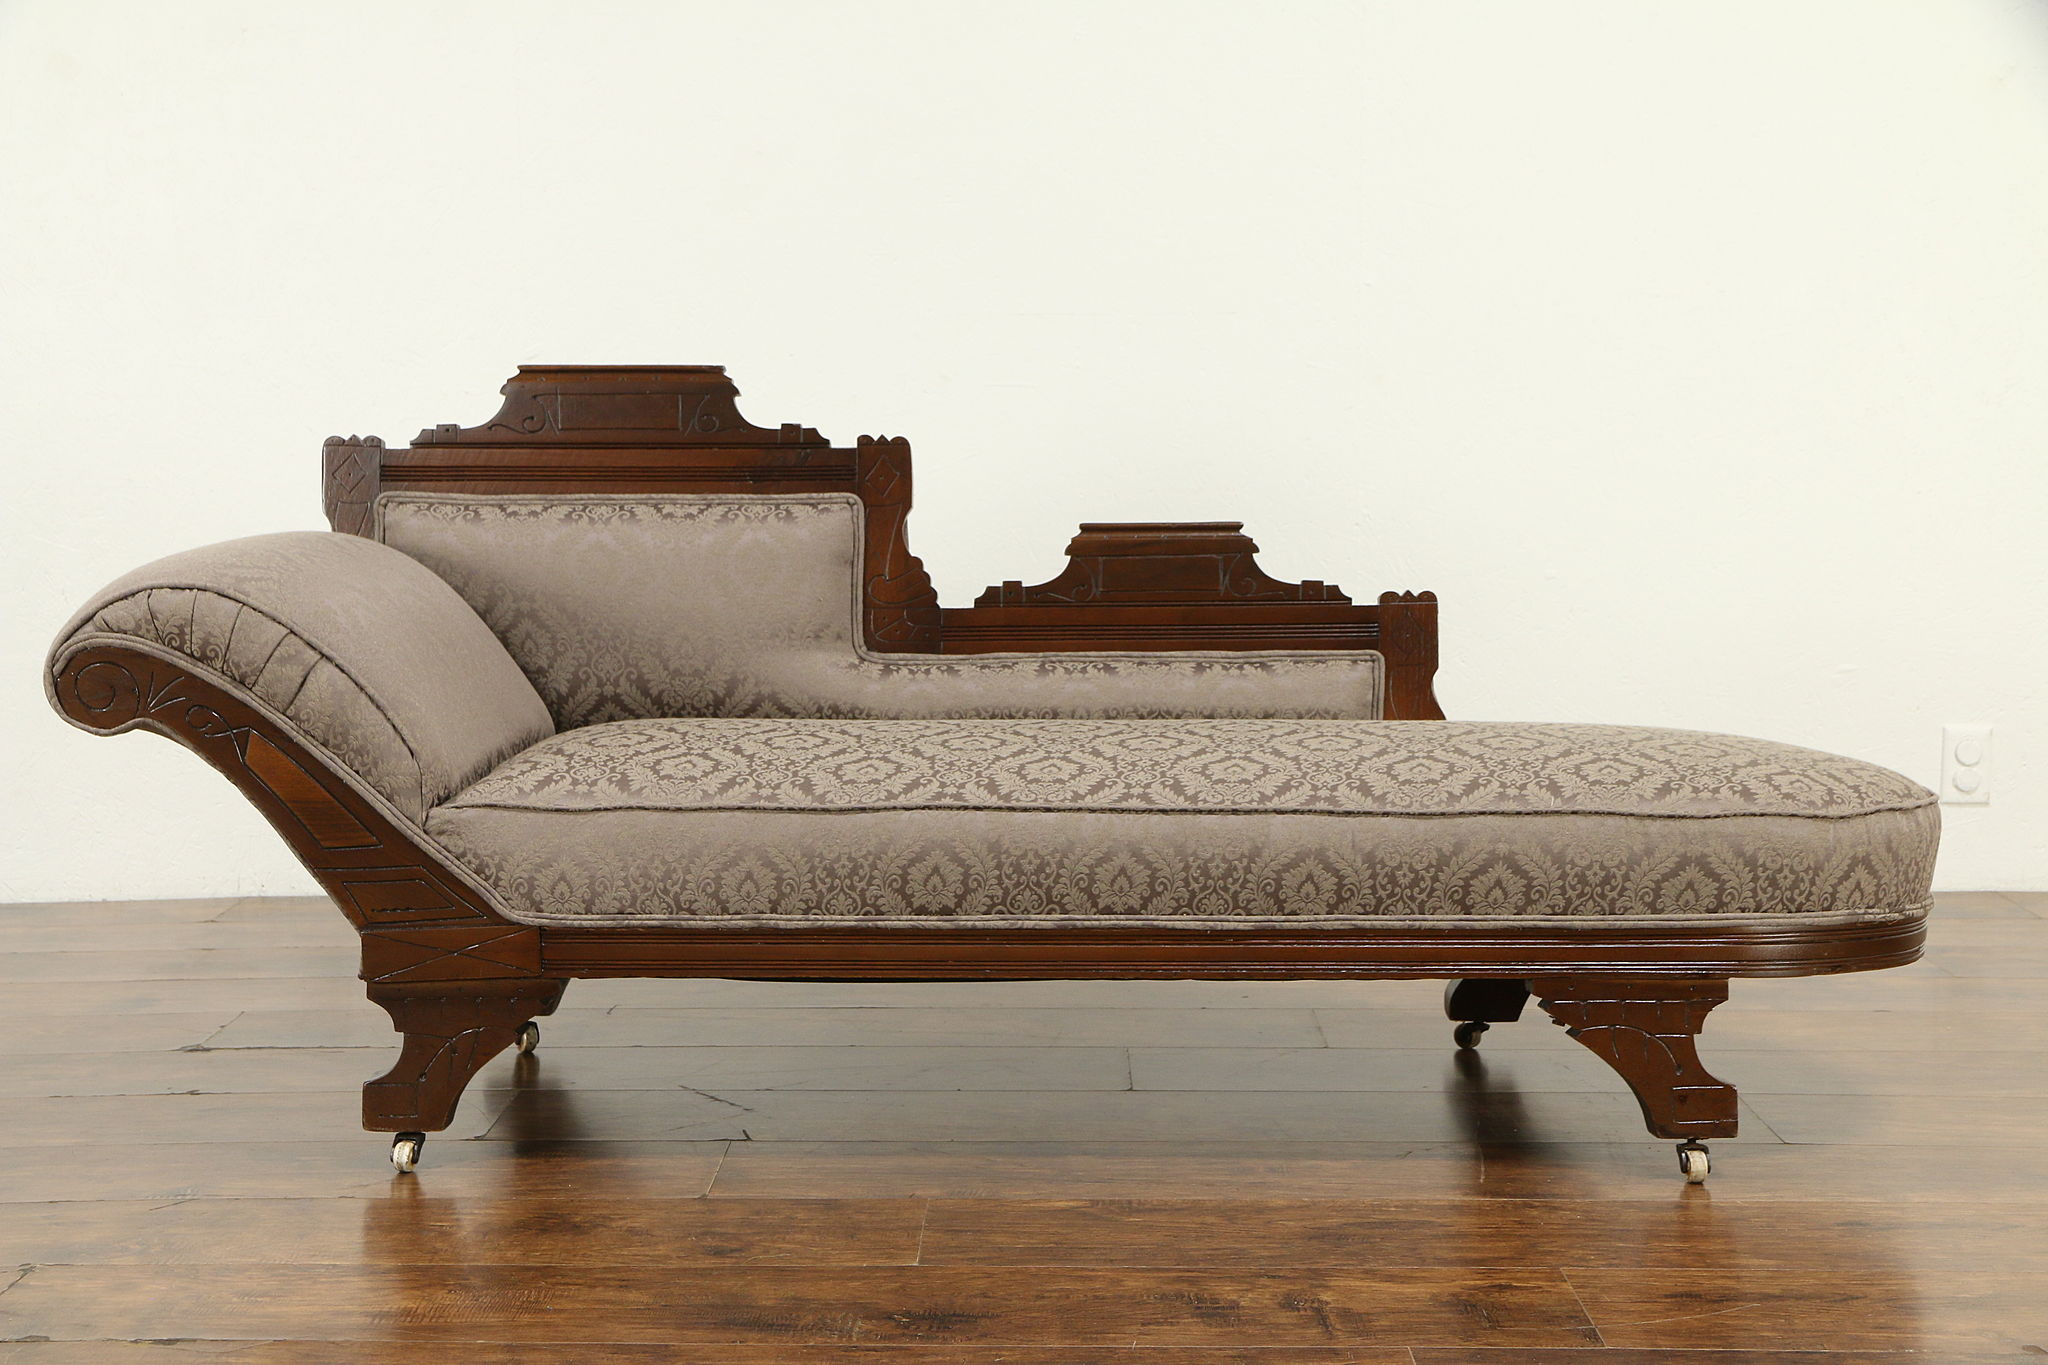 Chaise Style Art Nouveau victorian eastlake antique fainting couch, chaise lounge, new upholstery  #32081